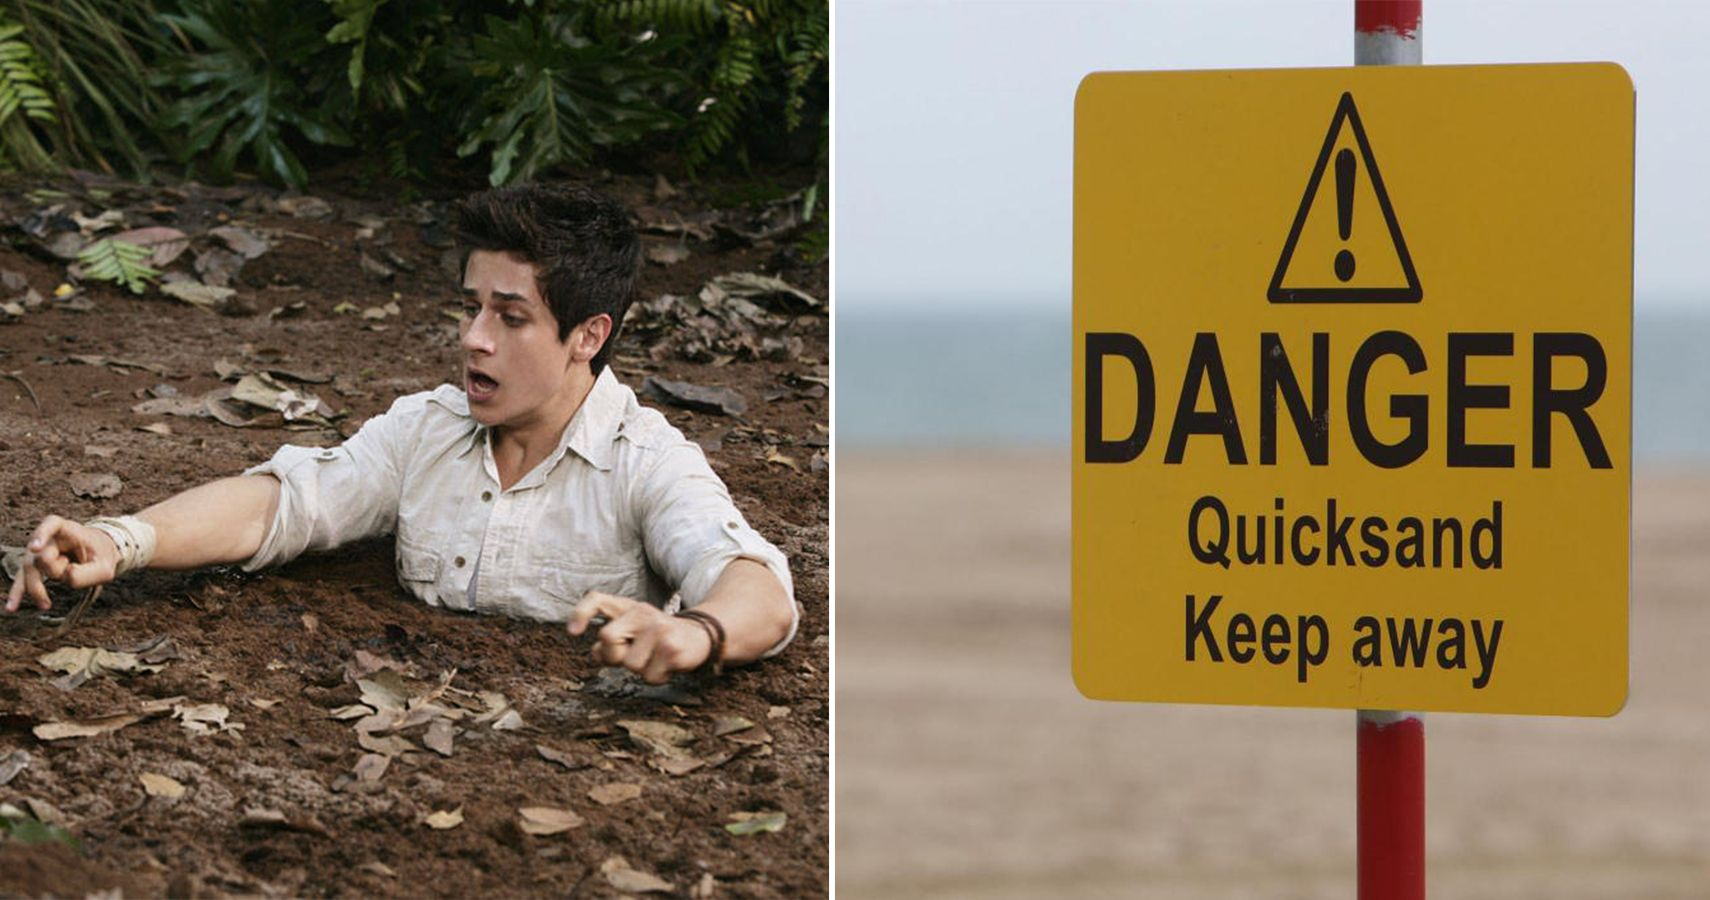 THIS is what you need to do to escape quicksand